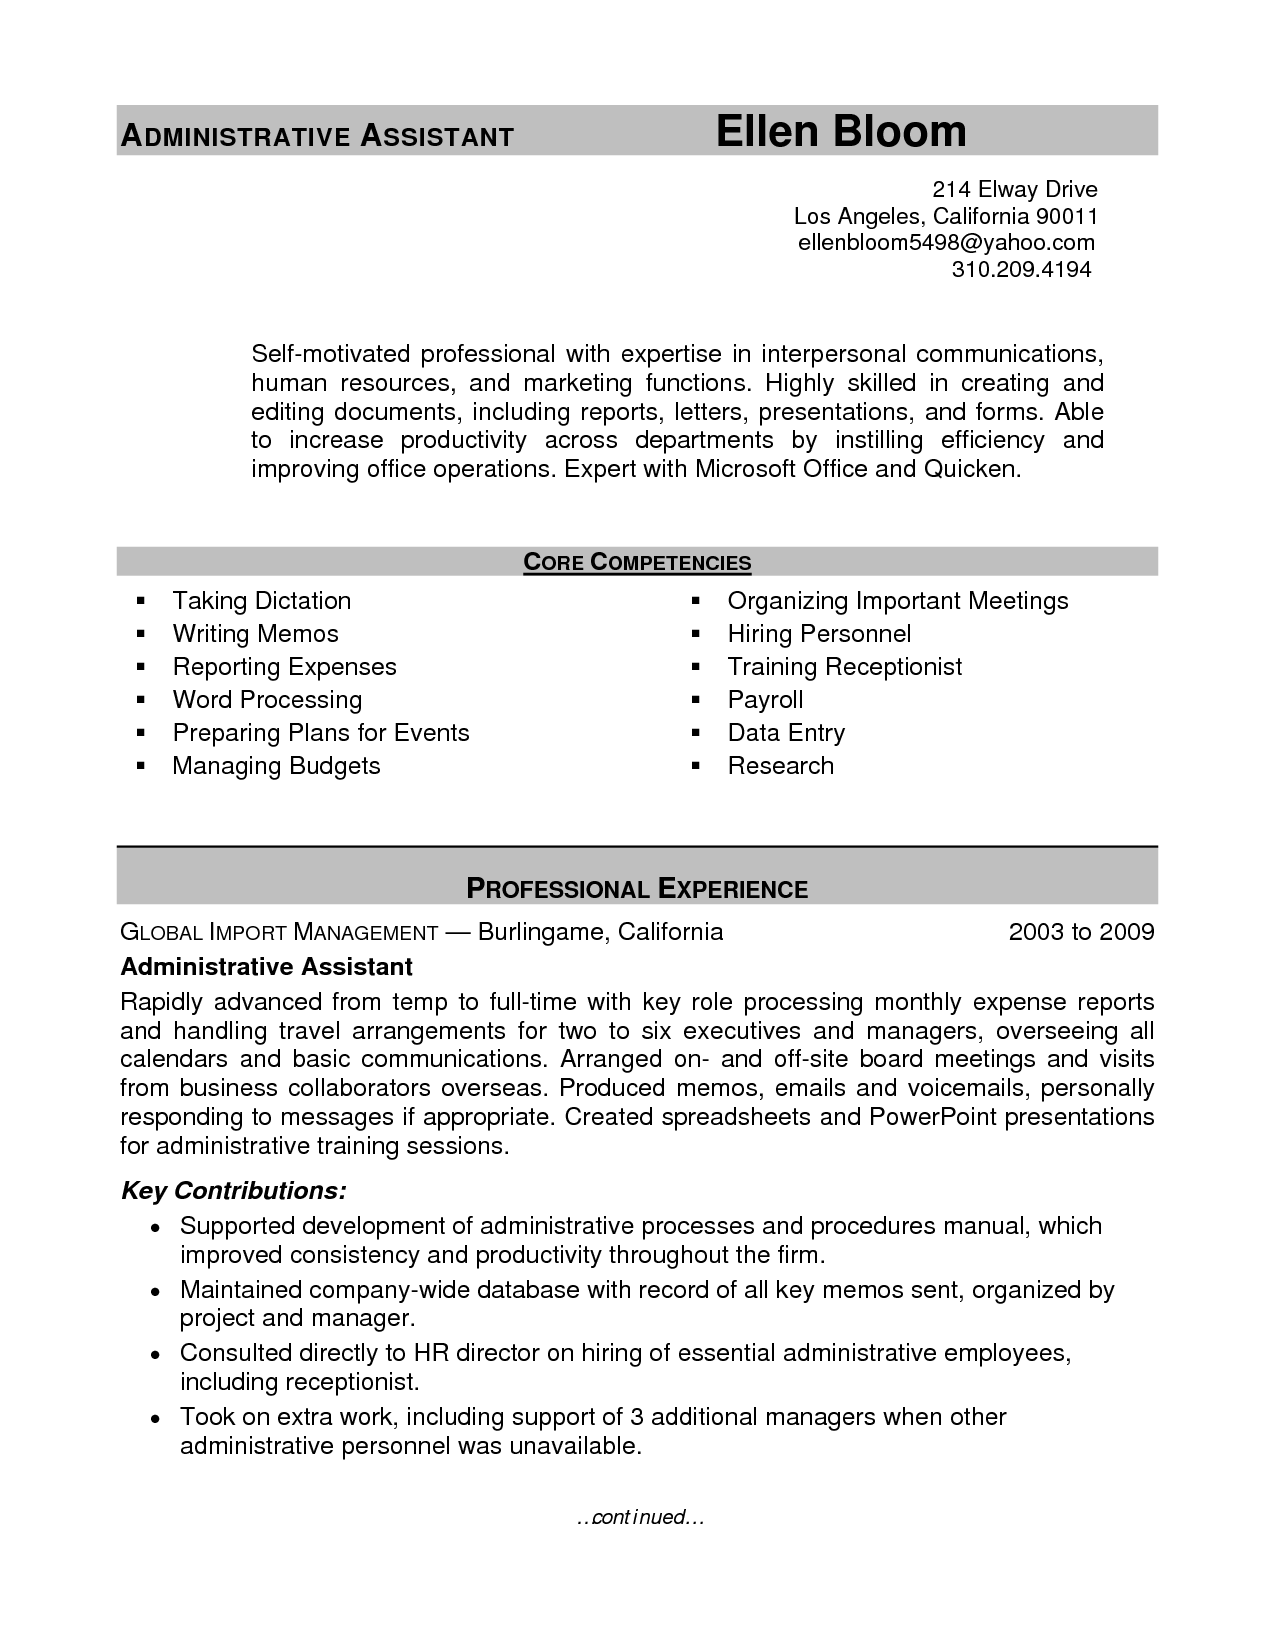 medical office assistant resume - Selo.l-ink.co